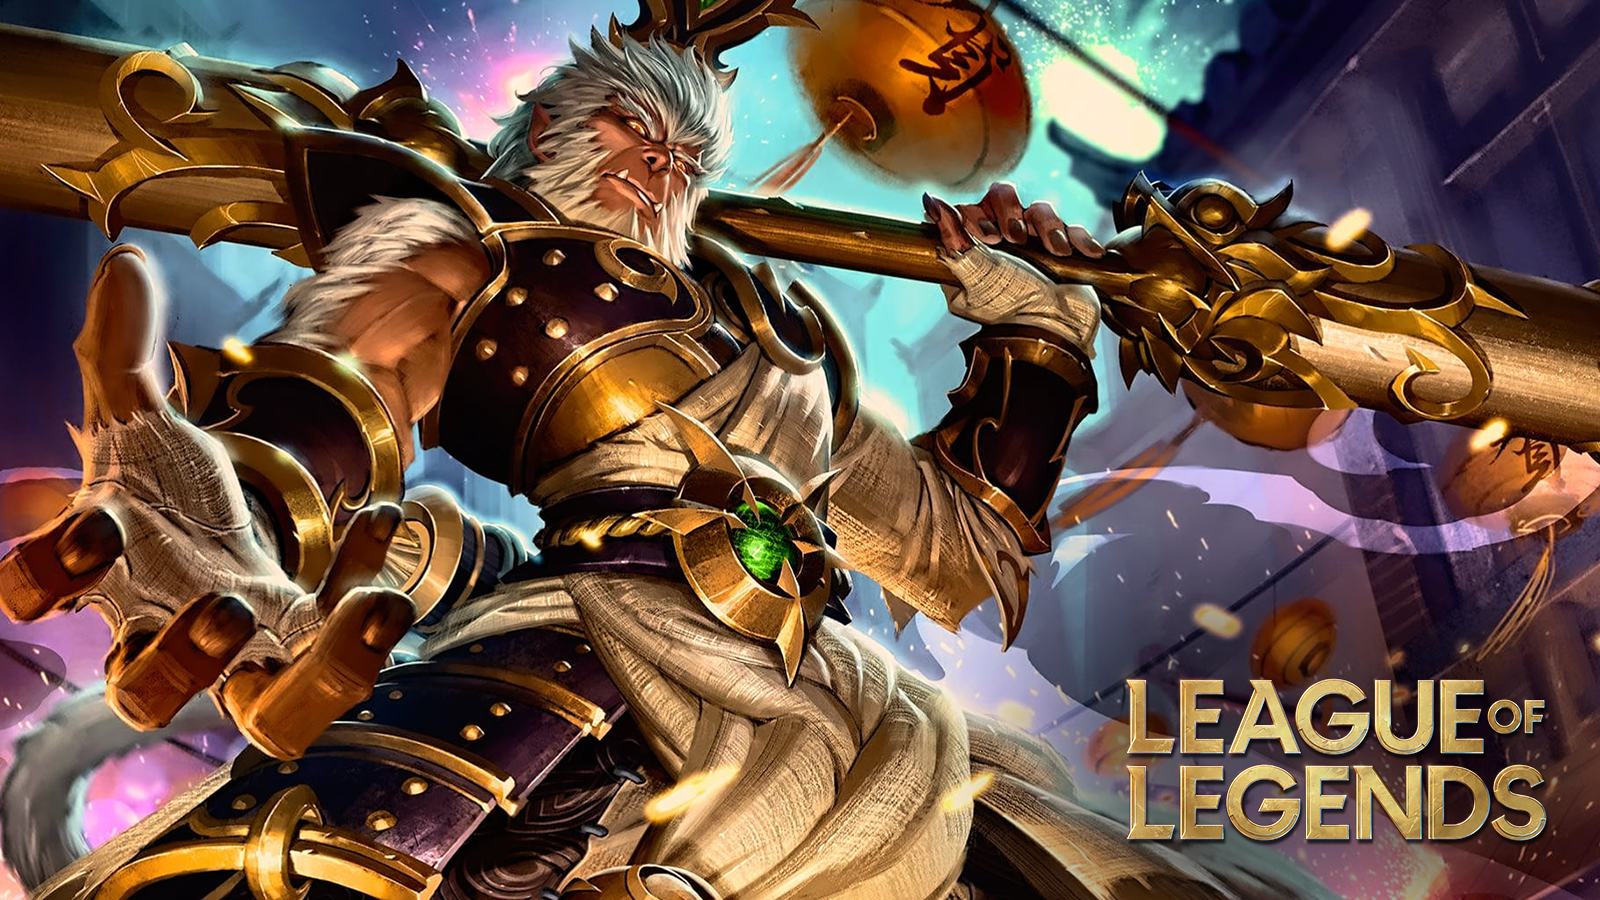 Will these Wukong nerfs make him a little less oppressive in Patch 10.6?